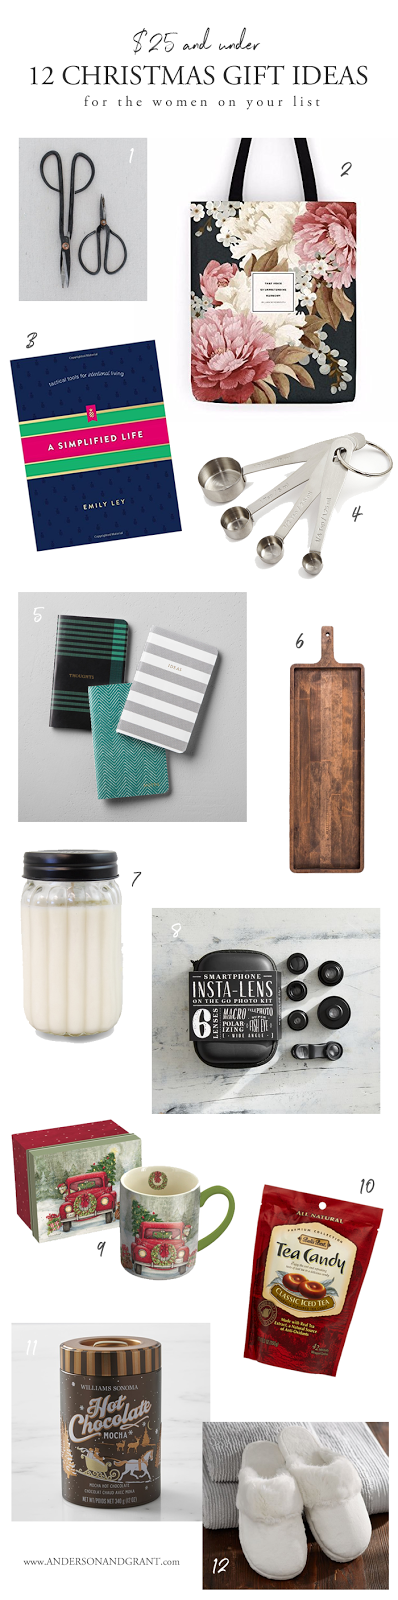 Twelve special gifts all under $25 perfect for any of the ladies on your Christmas shopping list.  |  Christmas Gift Guide at www.andersonandgrant.com